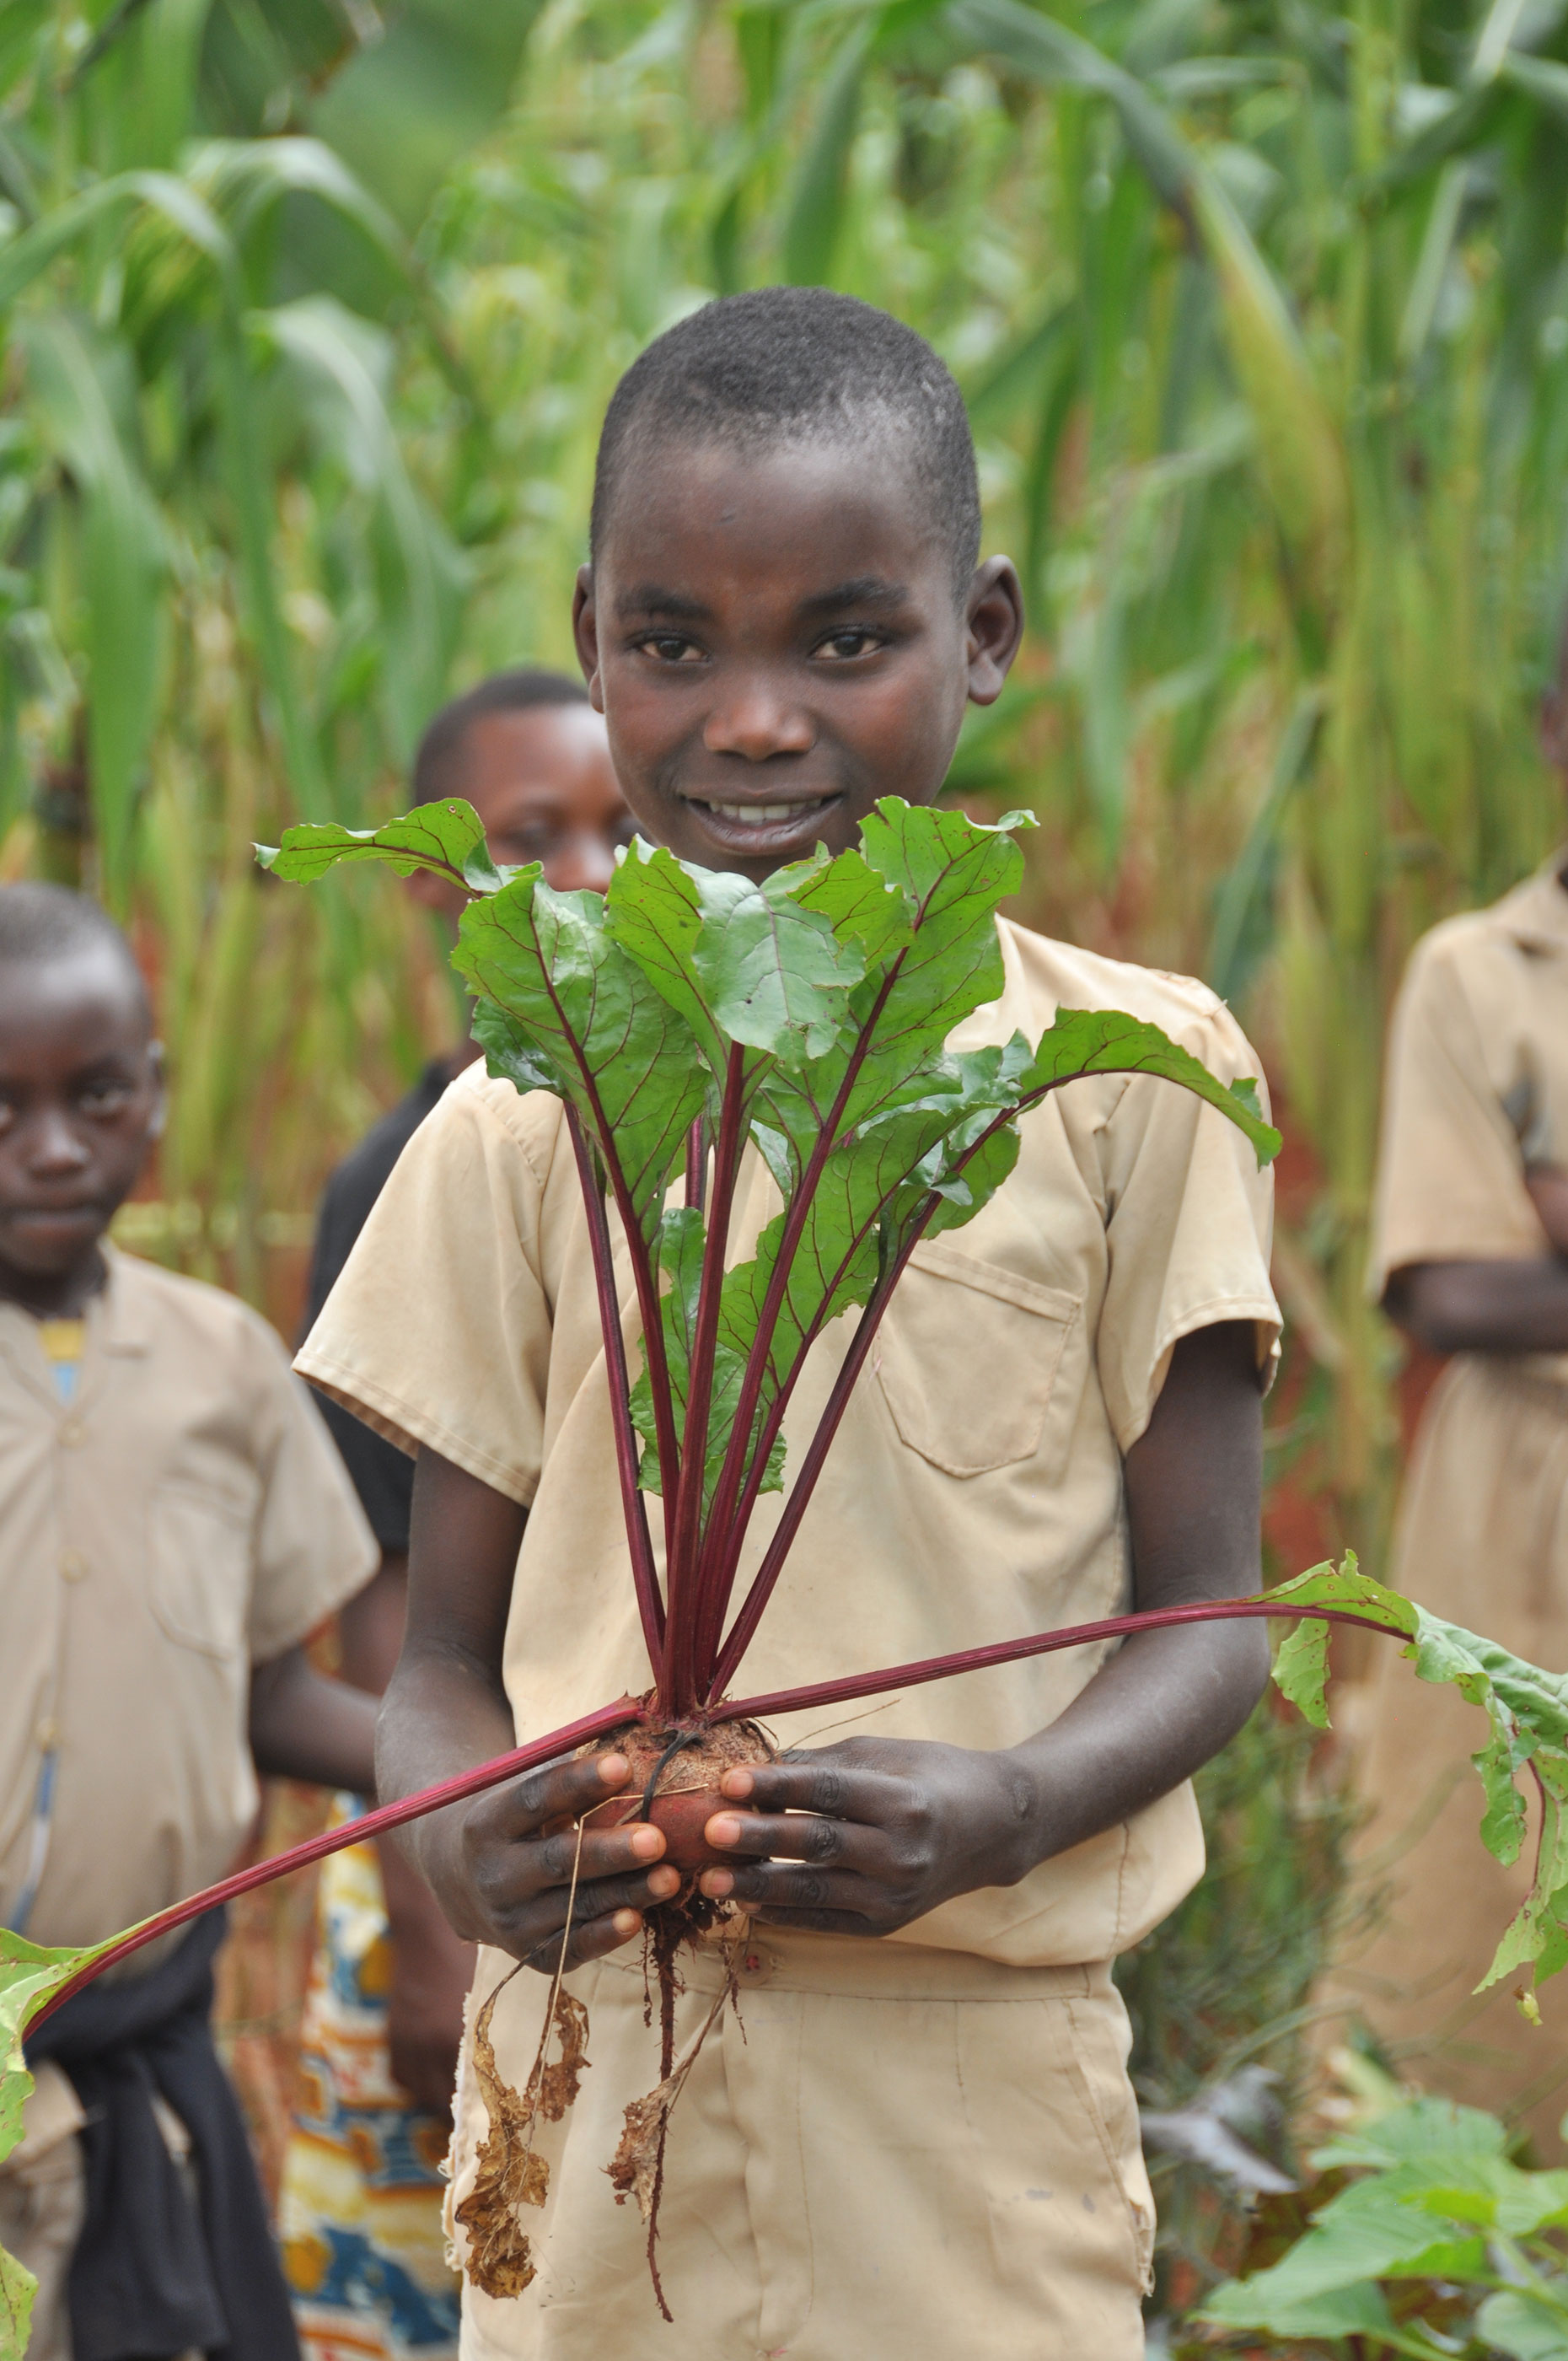 Schoolchildren in the small, war-torn African nation of Burundi are planting gardens and learning other skills, working with Washington State University Extension and 4-H partners